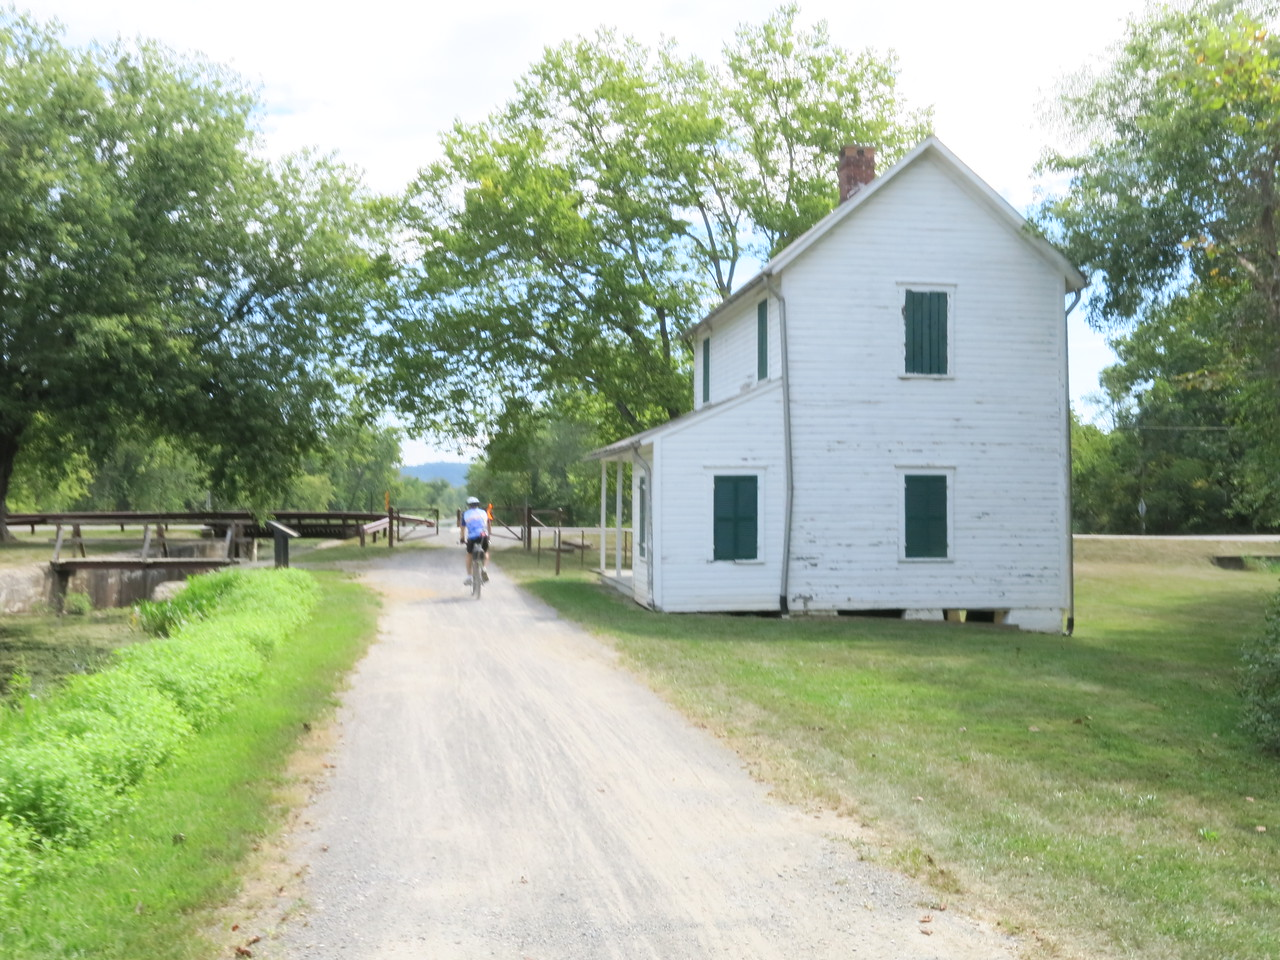 Lockhouse, towpath and Lock 70 at MP 166.7